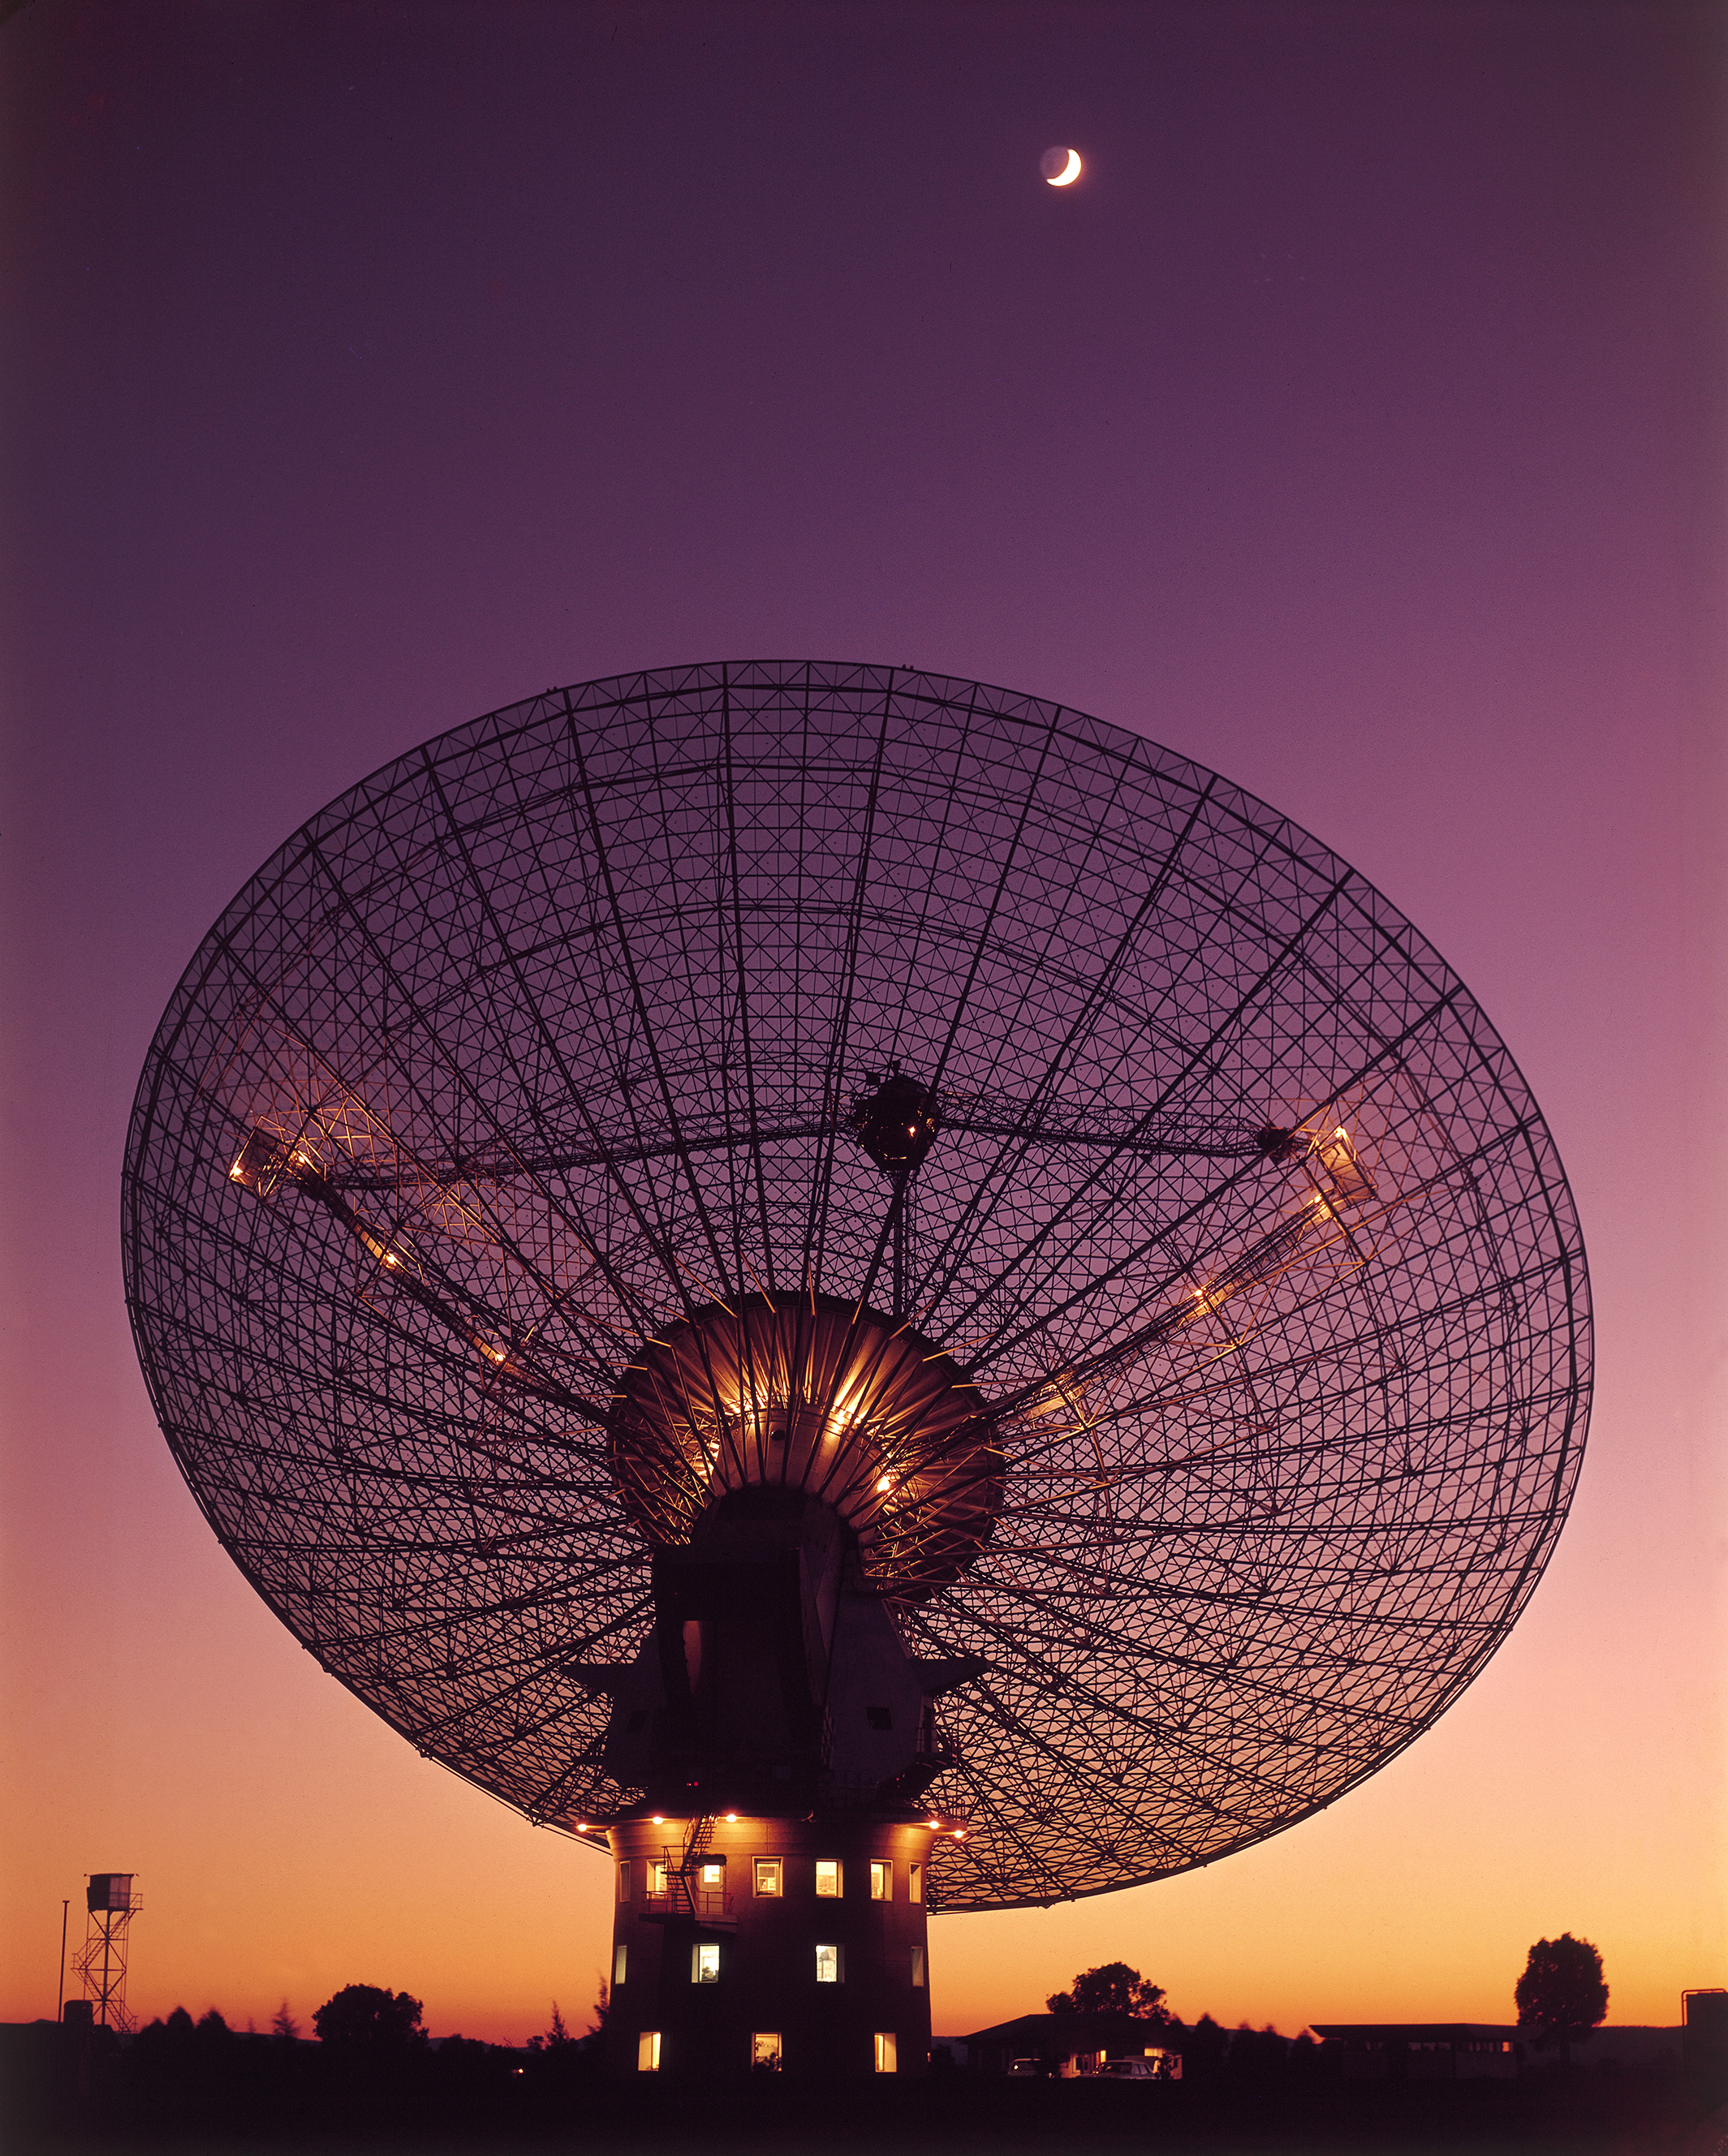 The silhouette of a large radio telescope dish at sunset. The Moon is high in the sky above it.